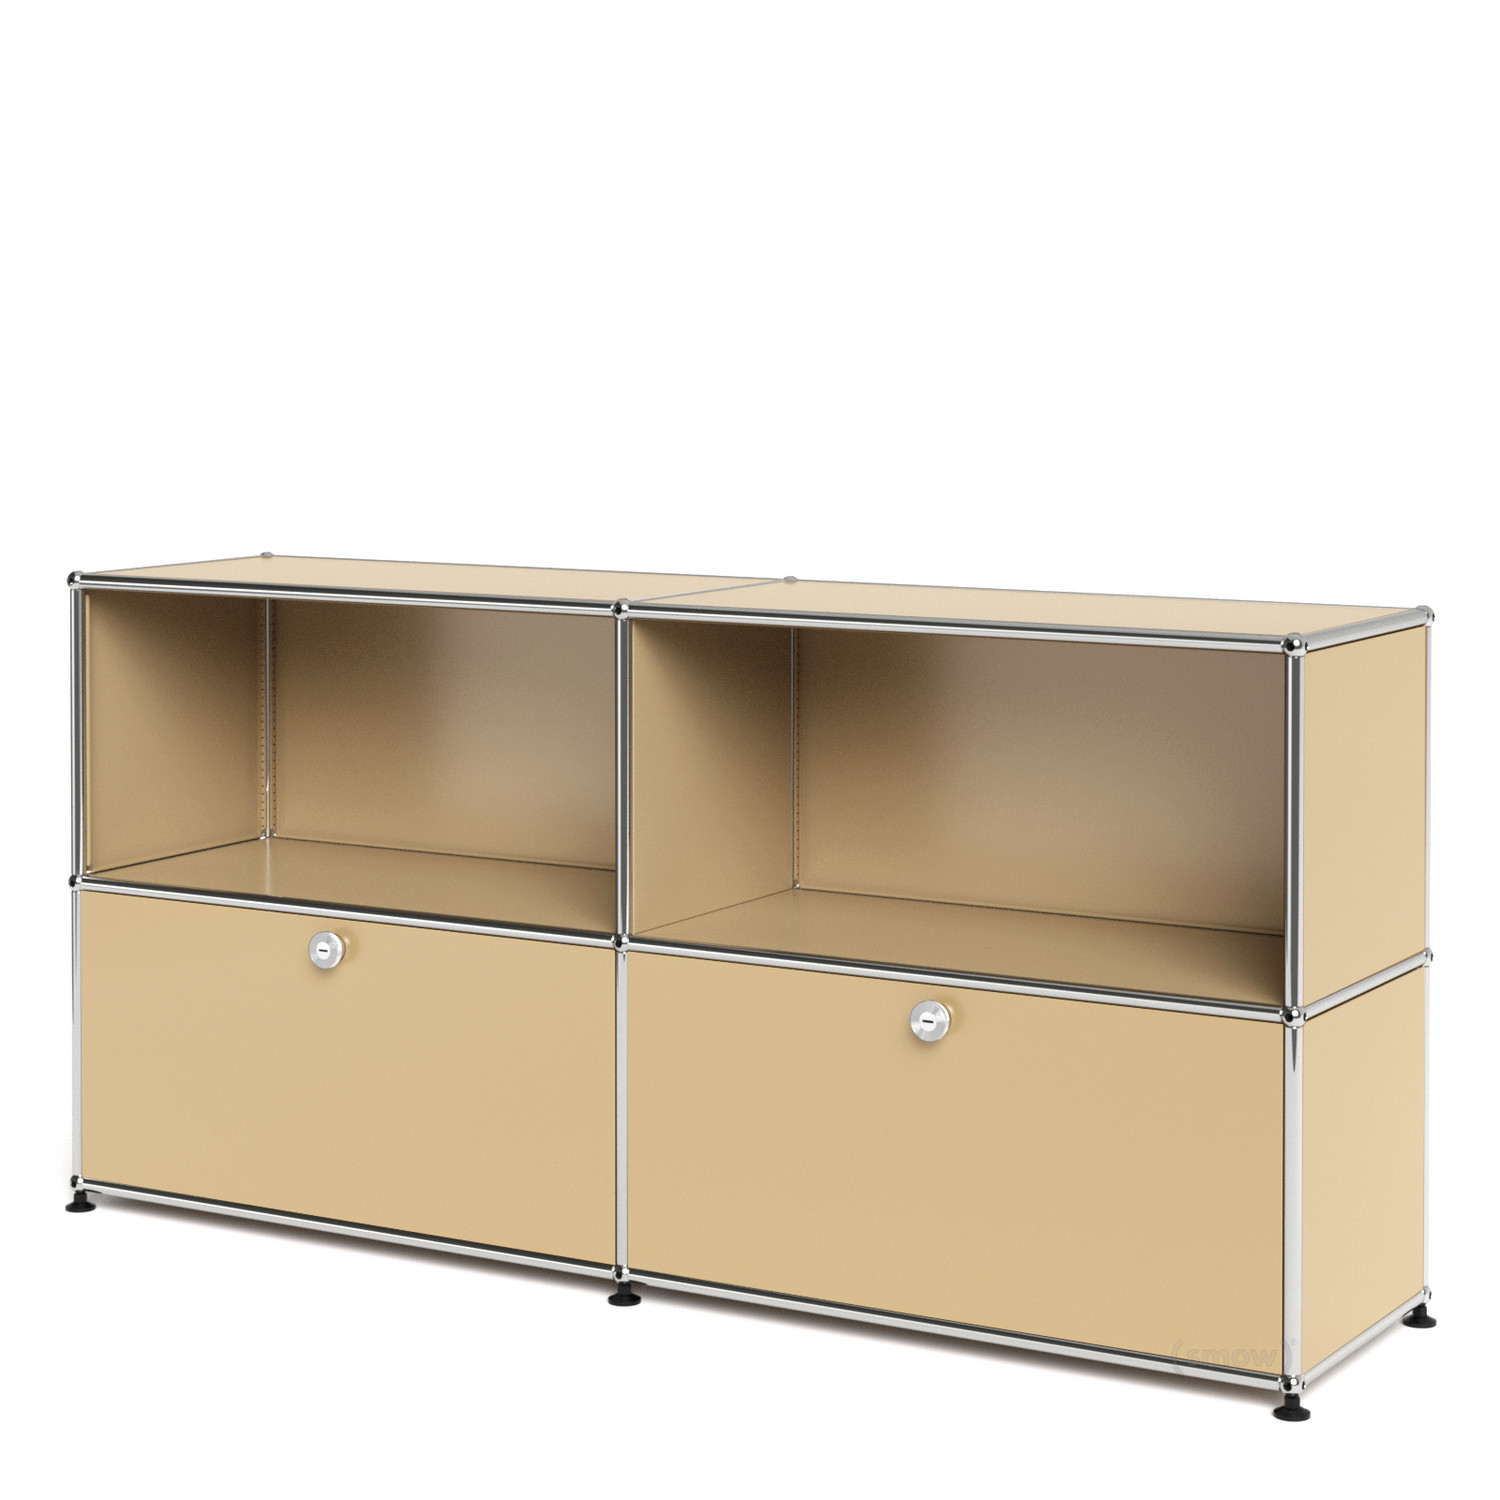 Usm haller sideboard l with 2 drop down doors usm beige for Sideboard usm